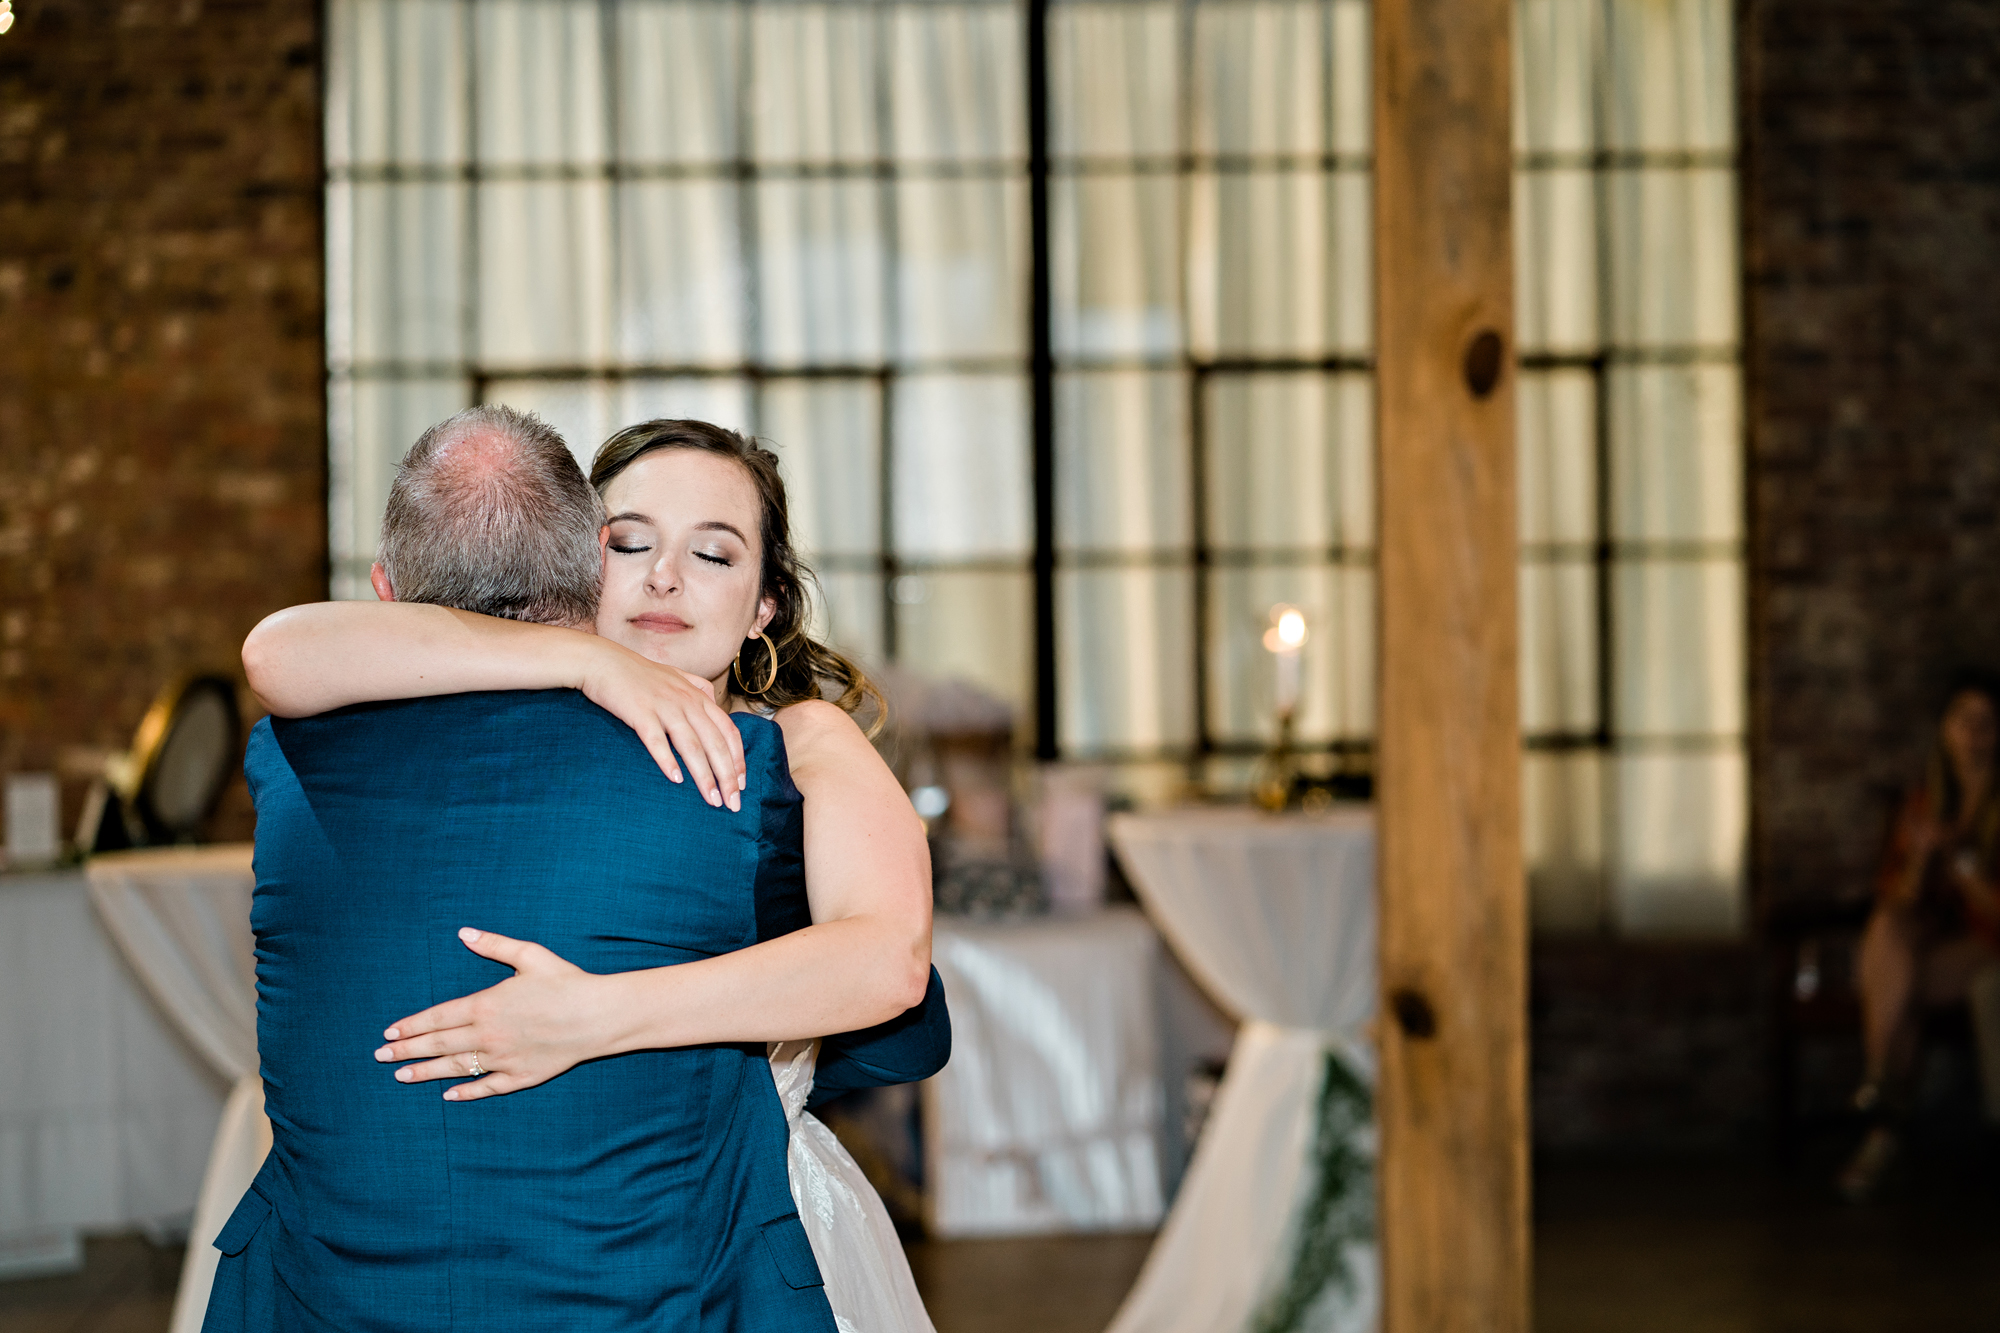 Eclectic-Alabama-Wedding-Photographers-Nick-Drollette-Photography-133.jpg